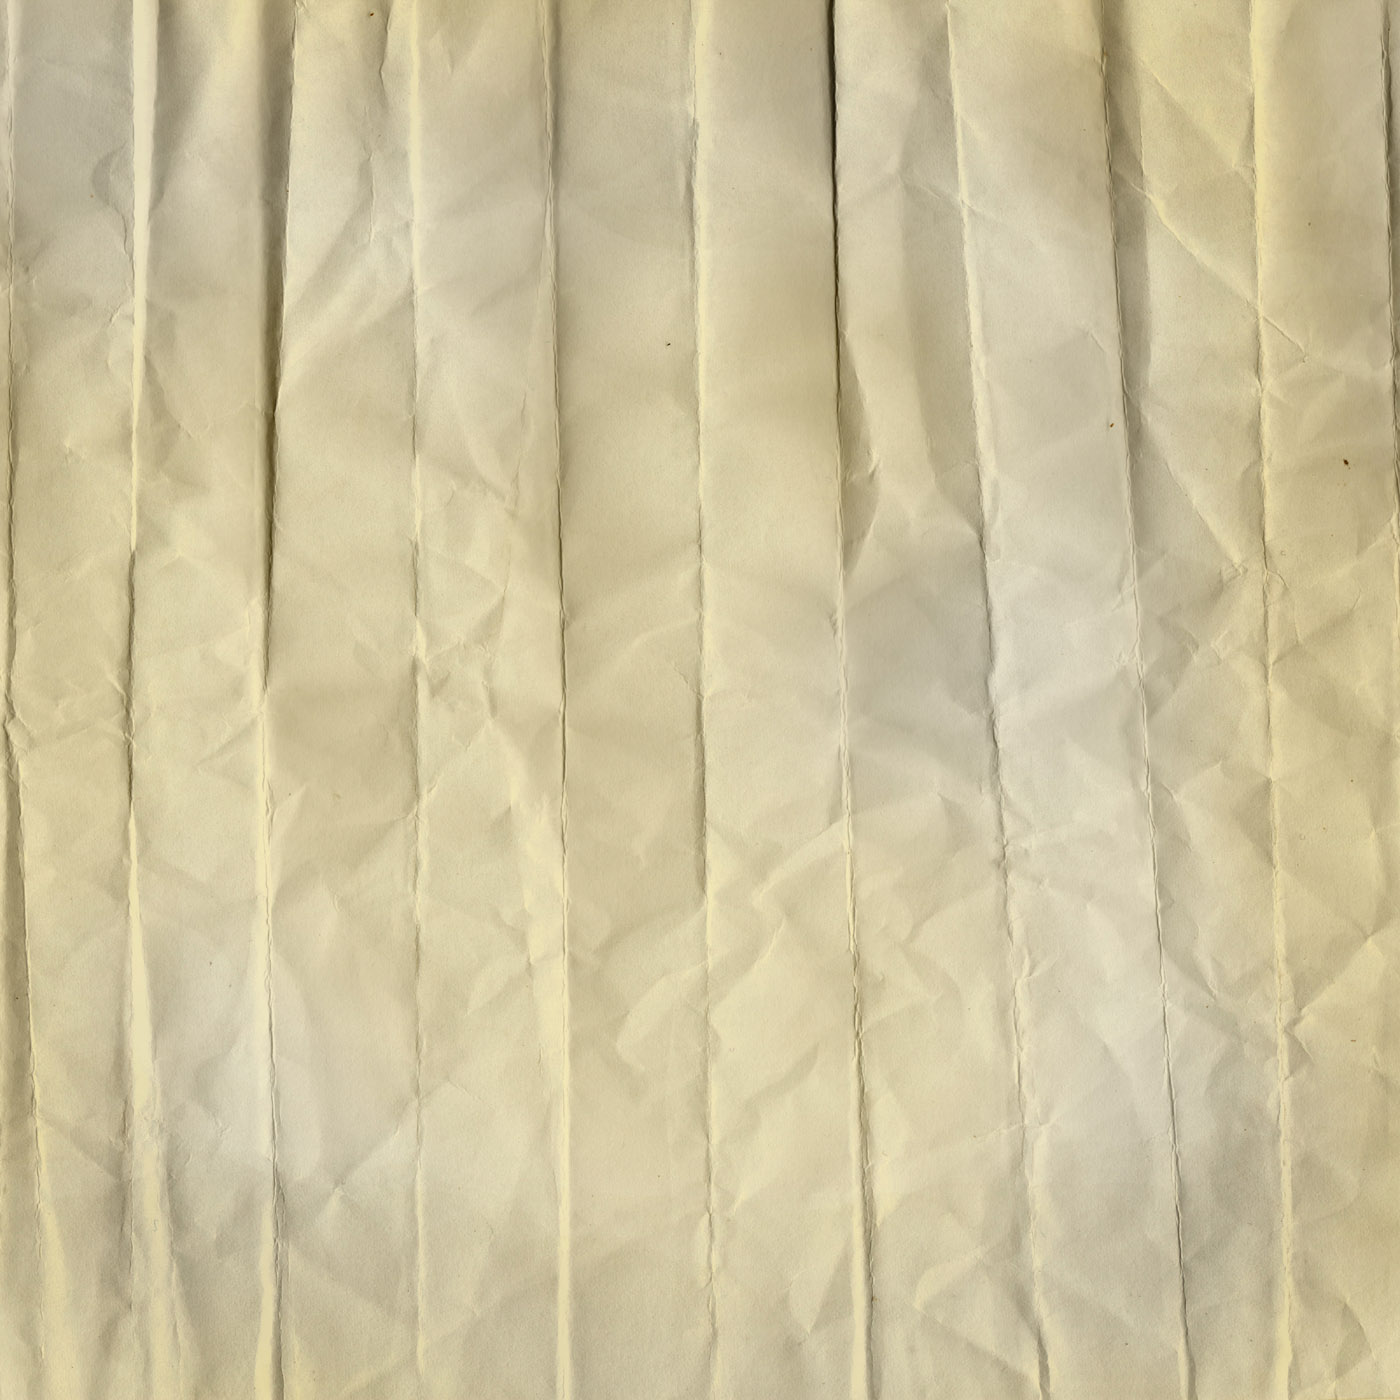 Fold pattern background 19307